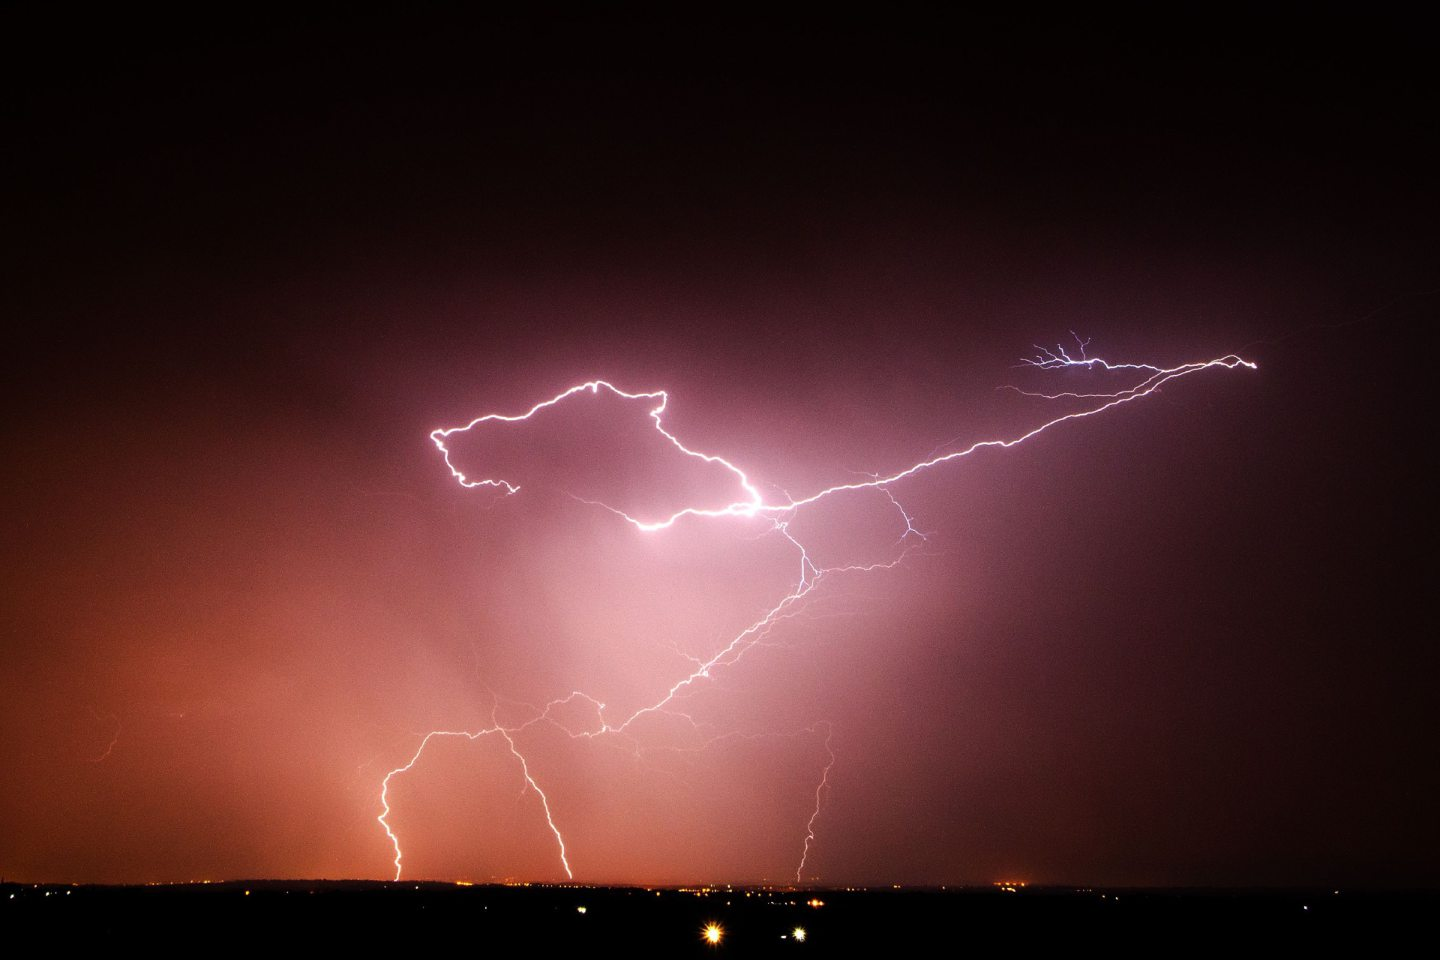 Lightning strikes over the Vale of Belvoir, Leicestershire as the UK is now braced for torrential downpours and storms that will could cause flash flooding across large parts of the country. PRESS ASSOCIATION Photo. Picture date: Saturday July 19, 2014. See PA story Weather Heat. Photo credit should read: Neil Squires/PA Wire